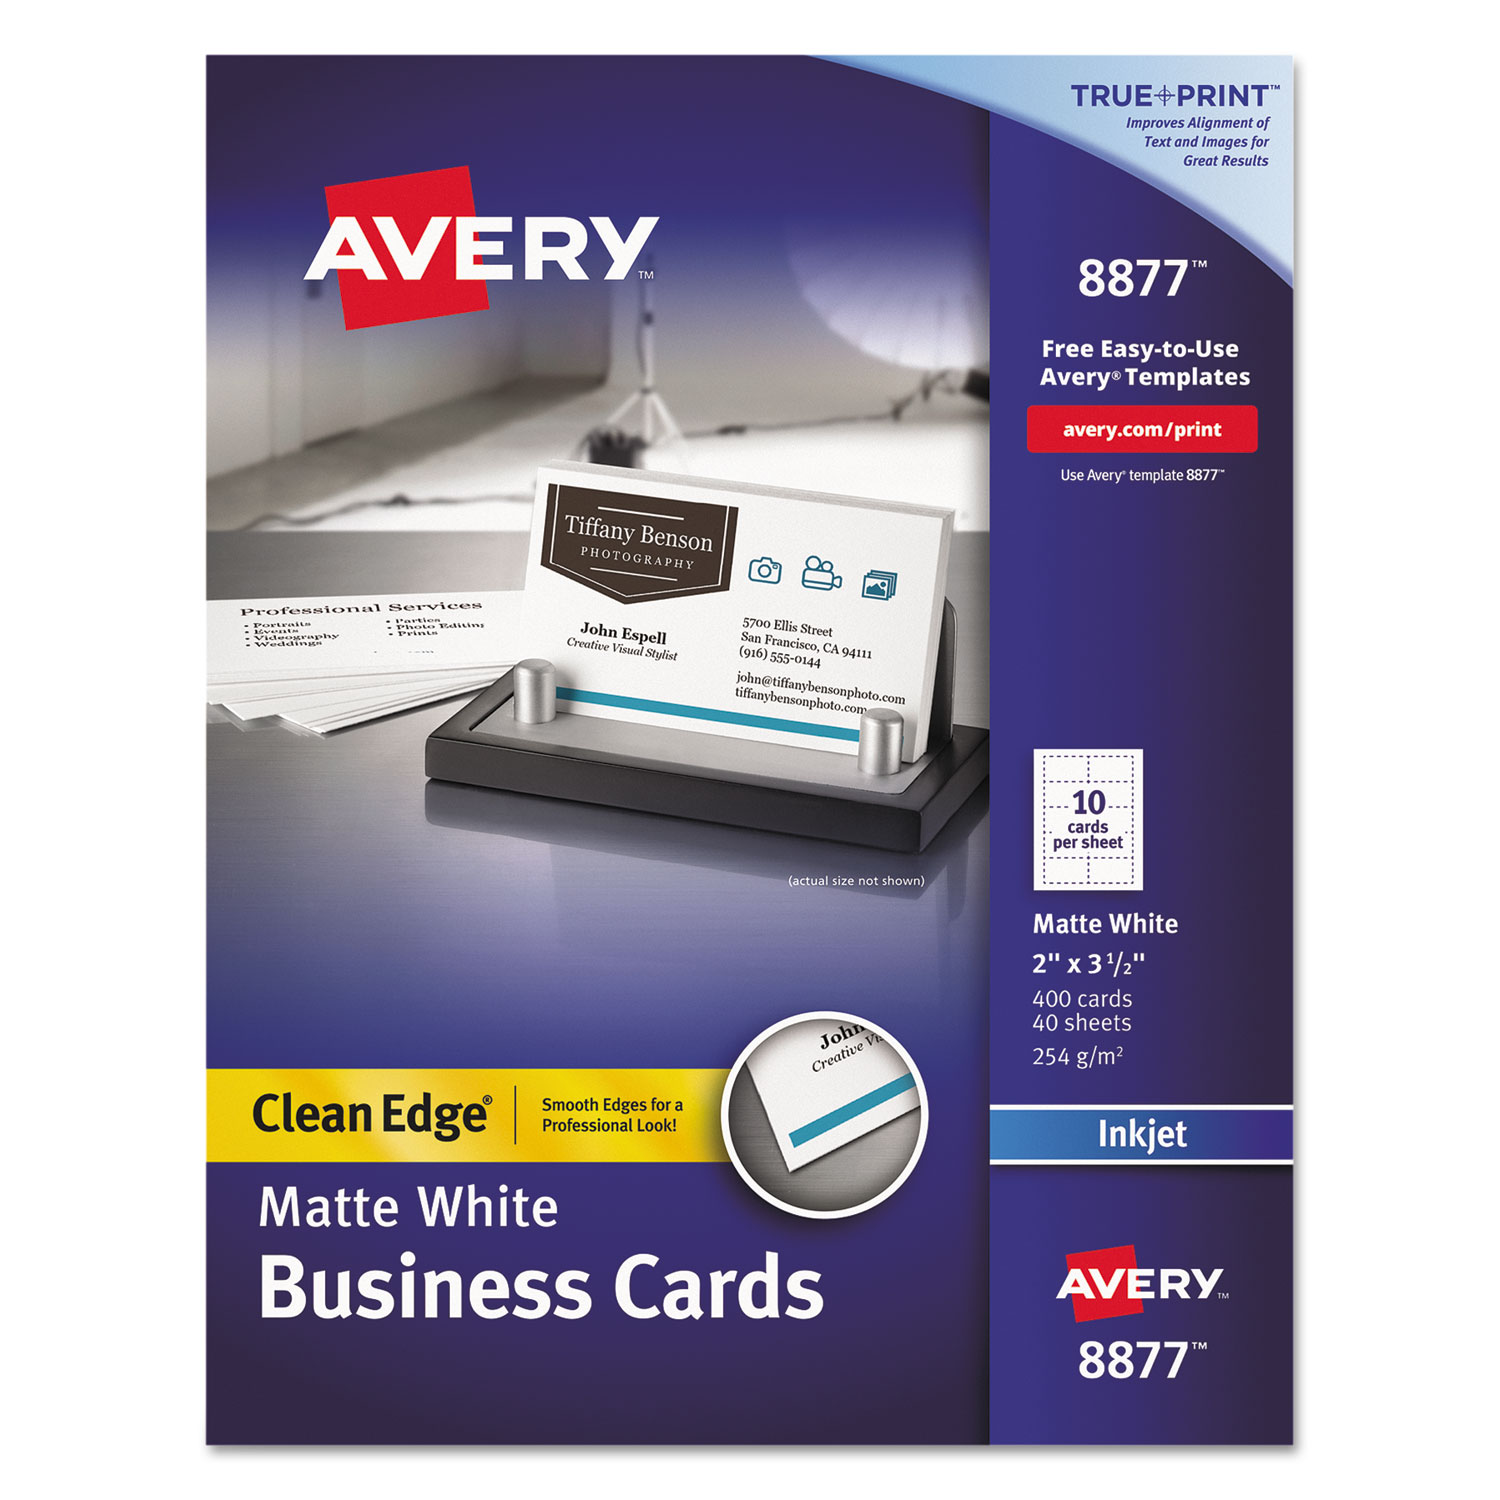 True print clean edge business cards by avery ave8877 ave8877 thumbnail 1 colourmoves